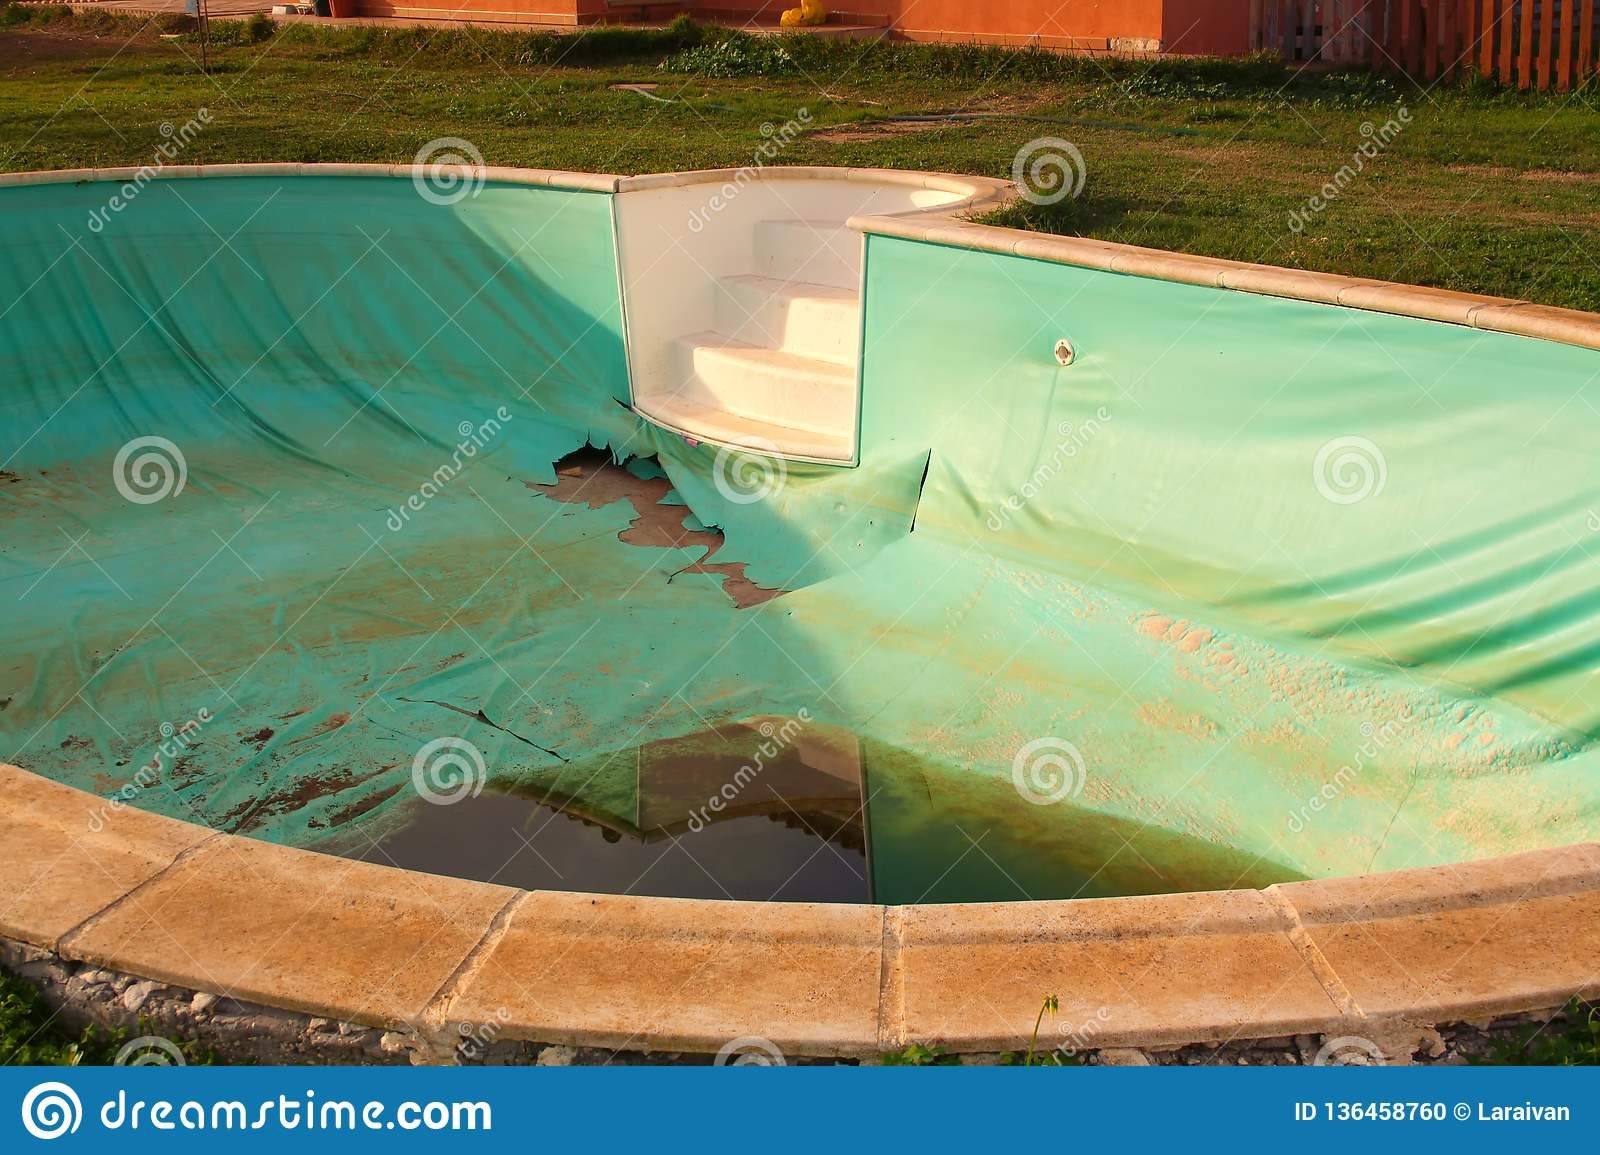 Abandoned Pool In A Private House Stock Photo Image Of Blue Drought 136458760